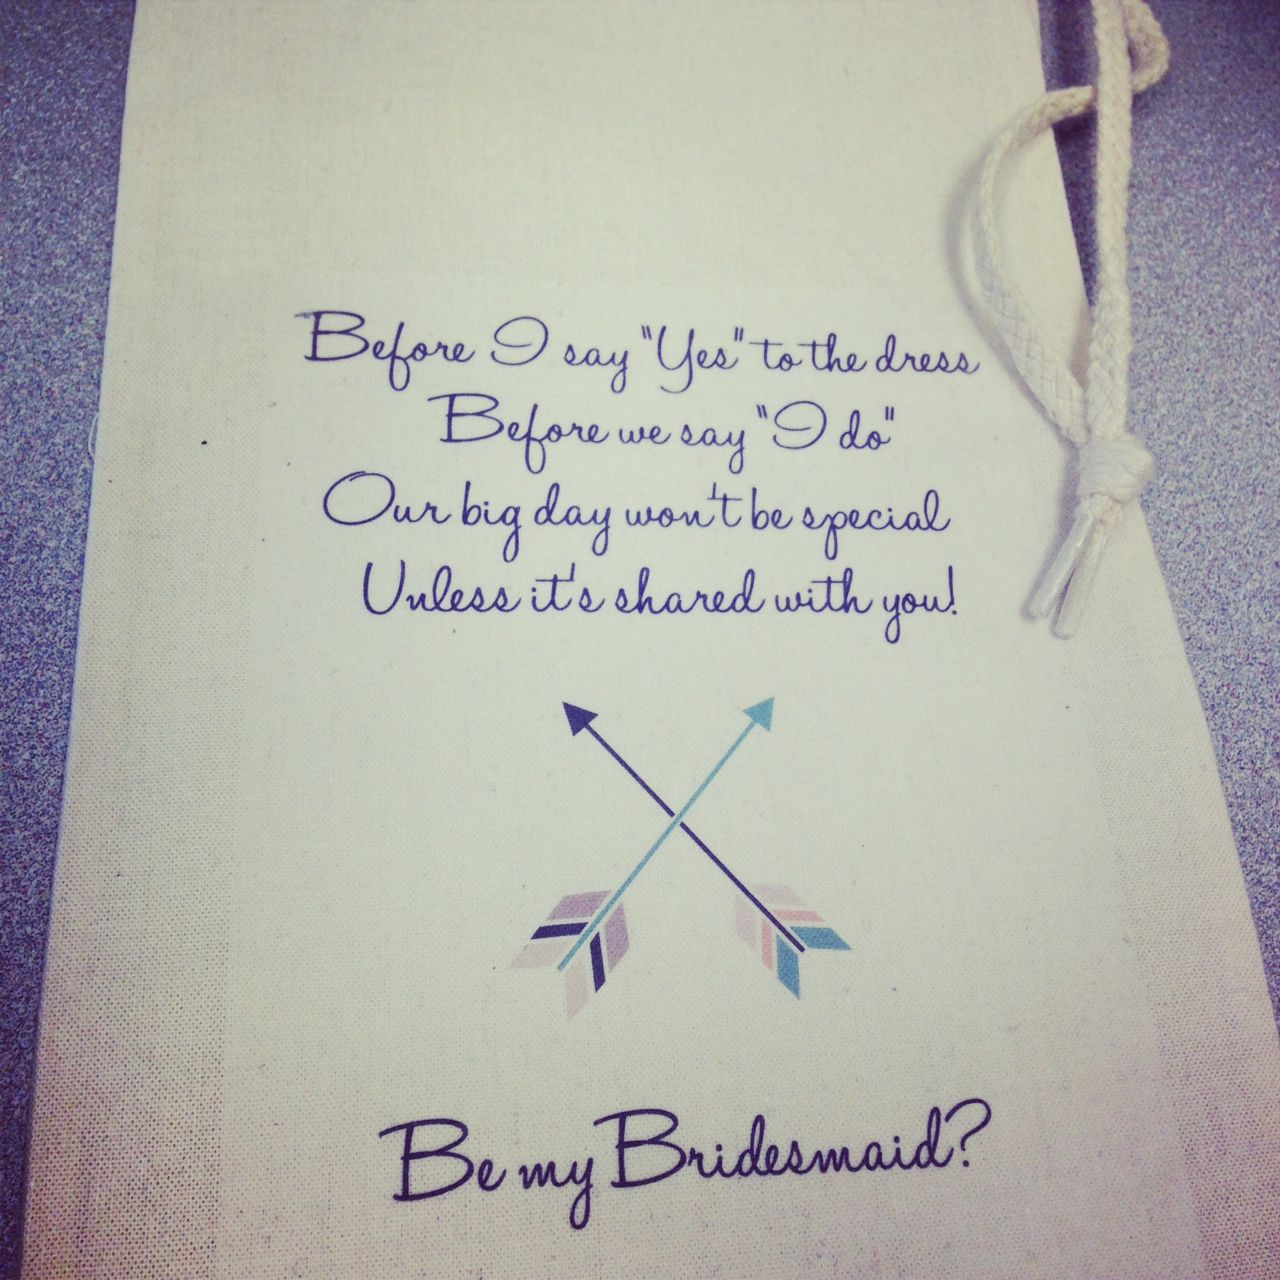 Planning a wedding? Make this easy DIY wine tote bag to propose to your bridesmaids! Throw a bottle of wine in it and the gift is complete! See more only at Imprintables.com/blog